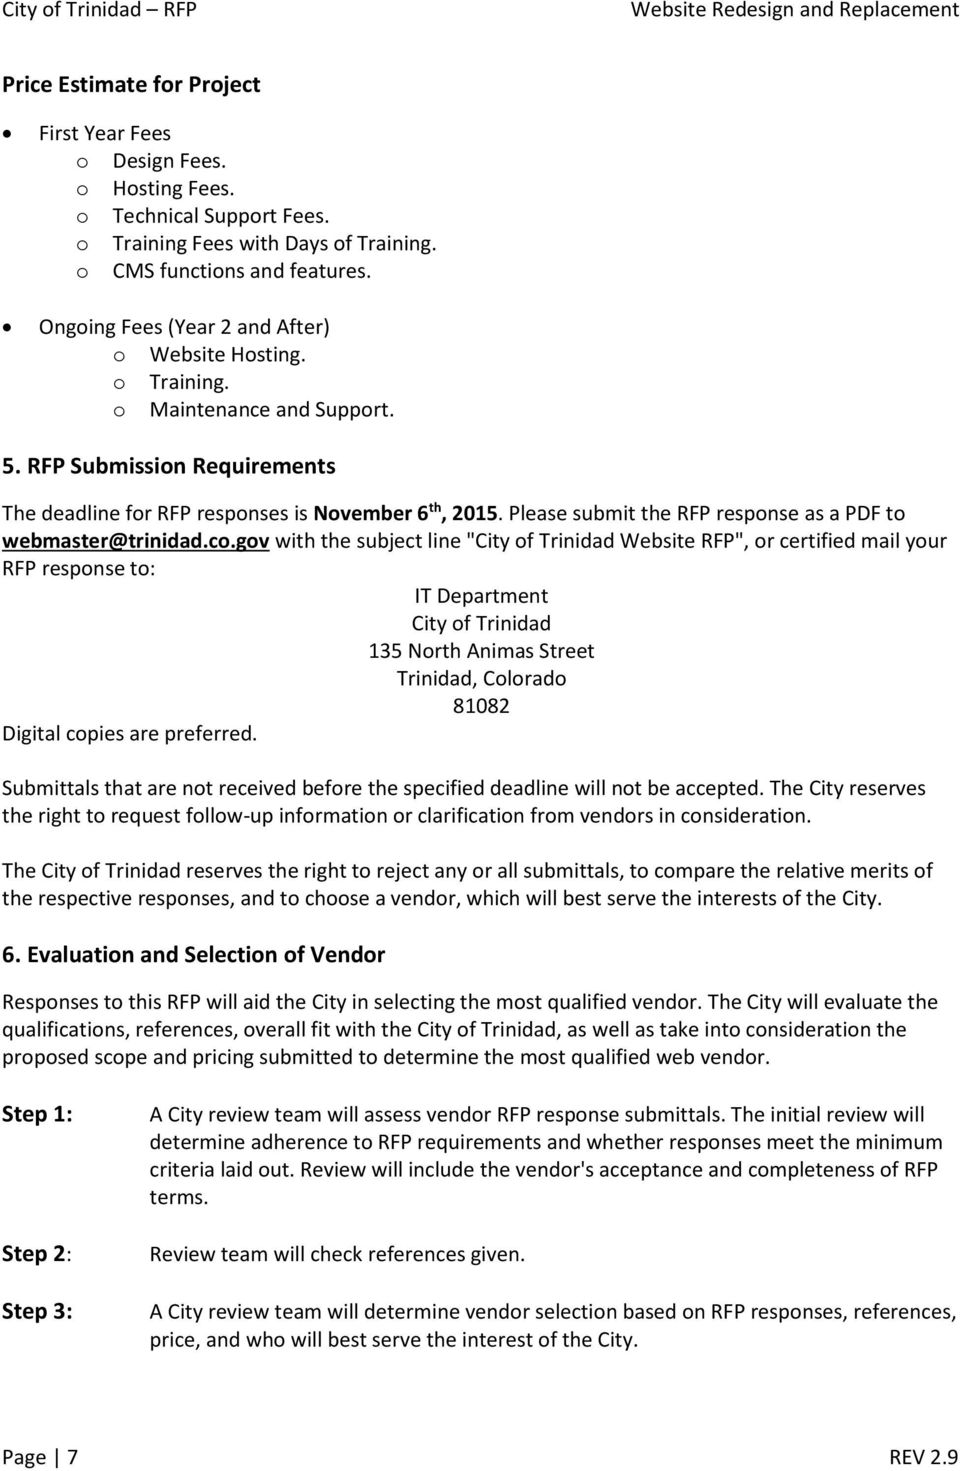 Request for Proposal For  City of Trinidad RFP  Municipal